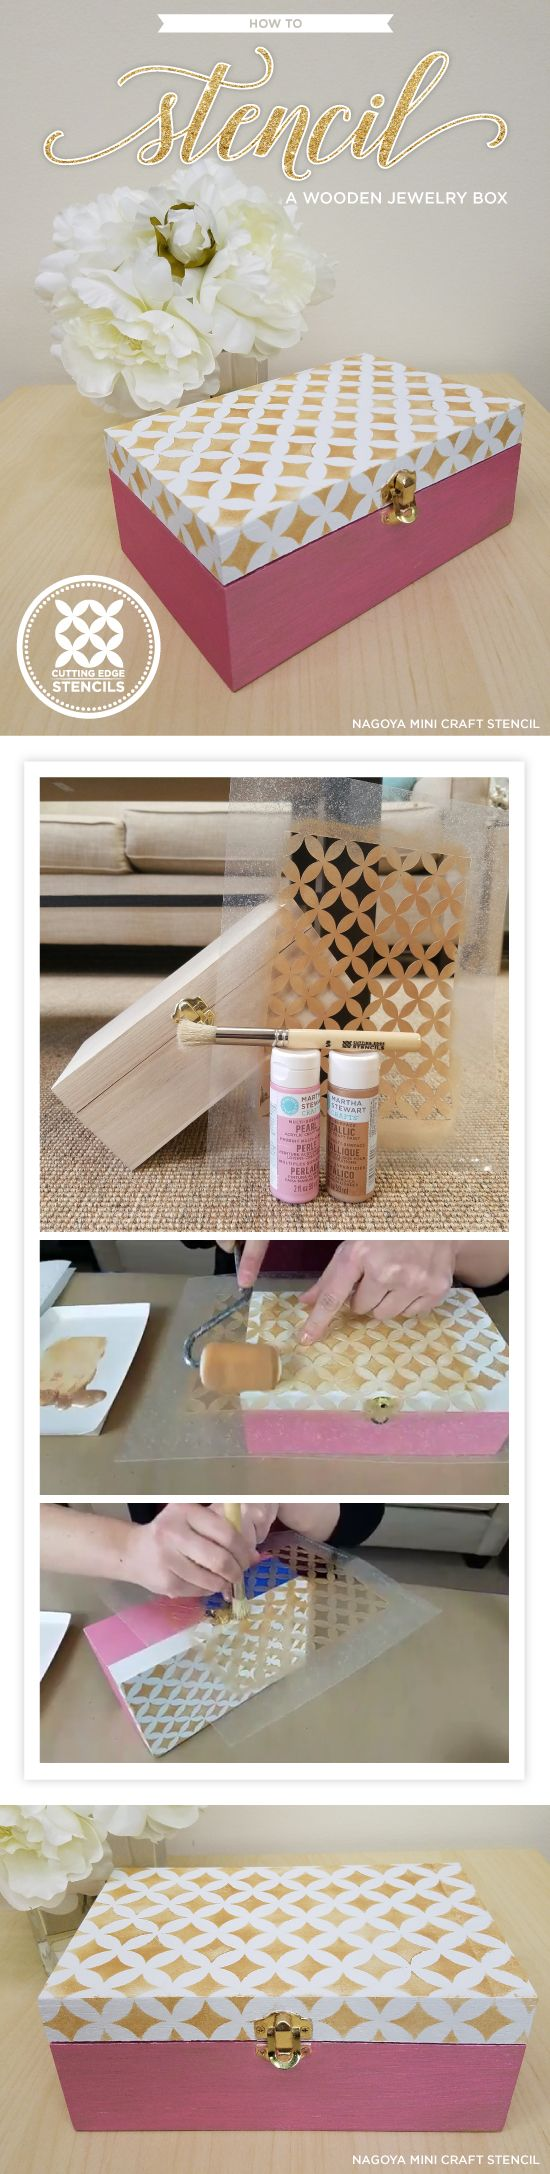 Cutting Edge Stencils shares how to stencil